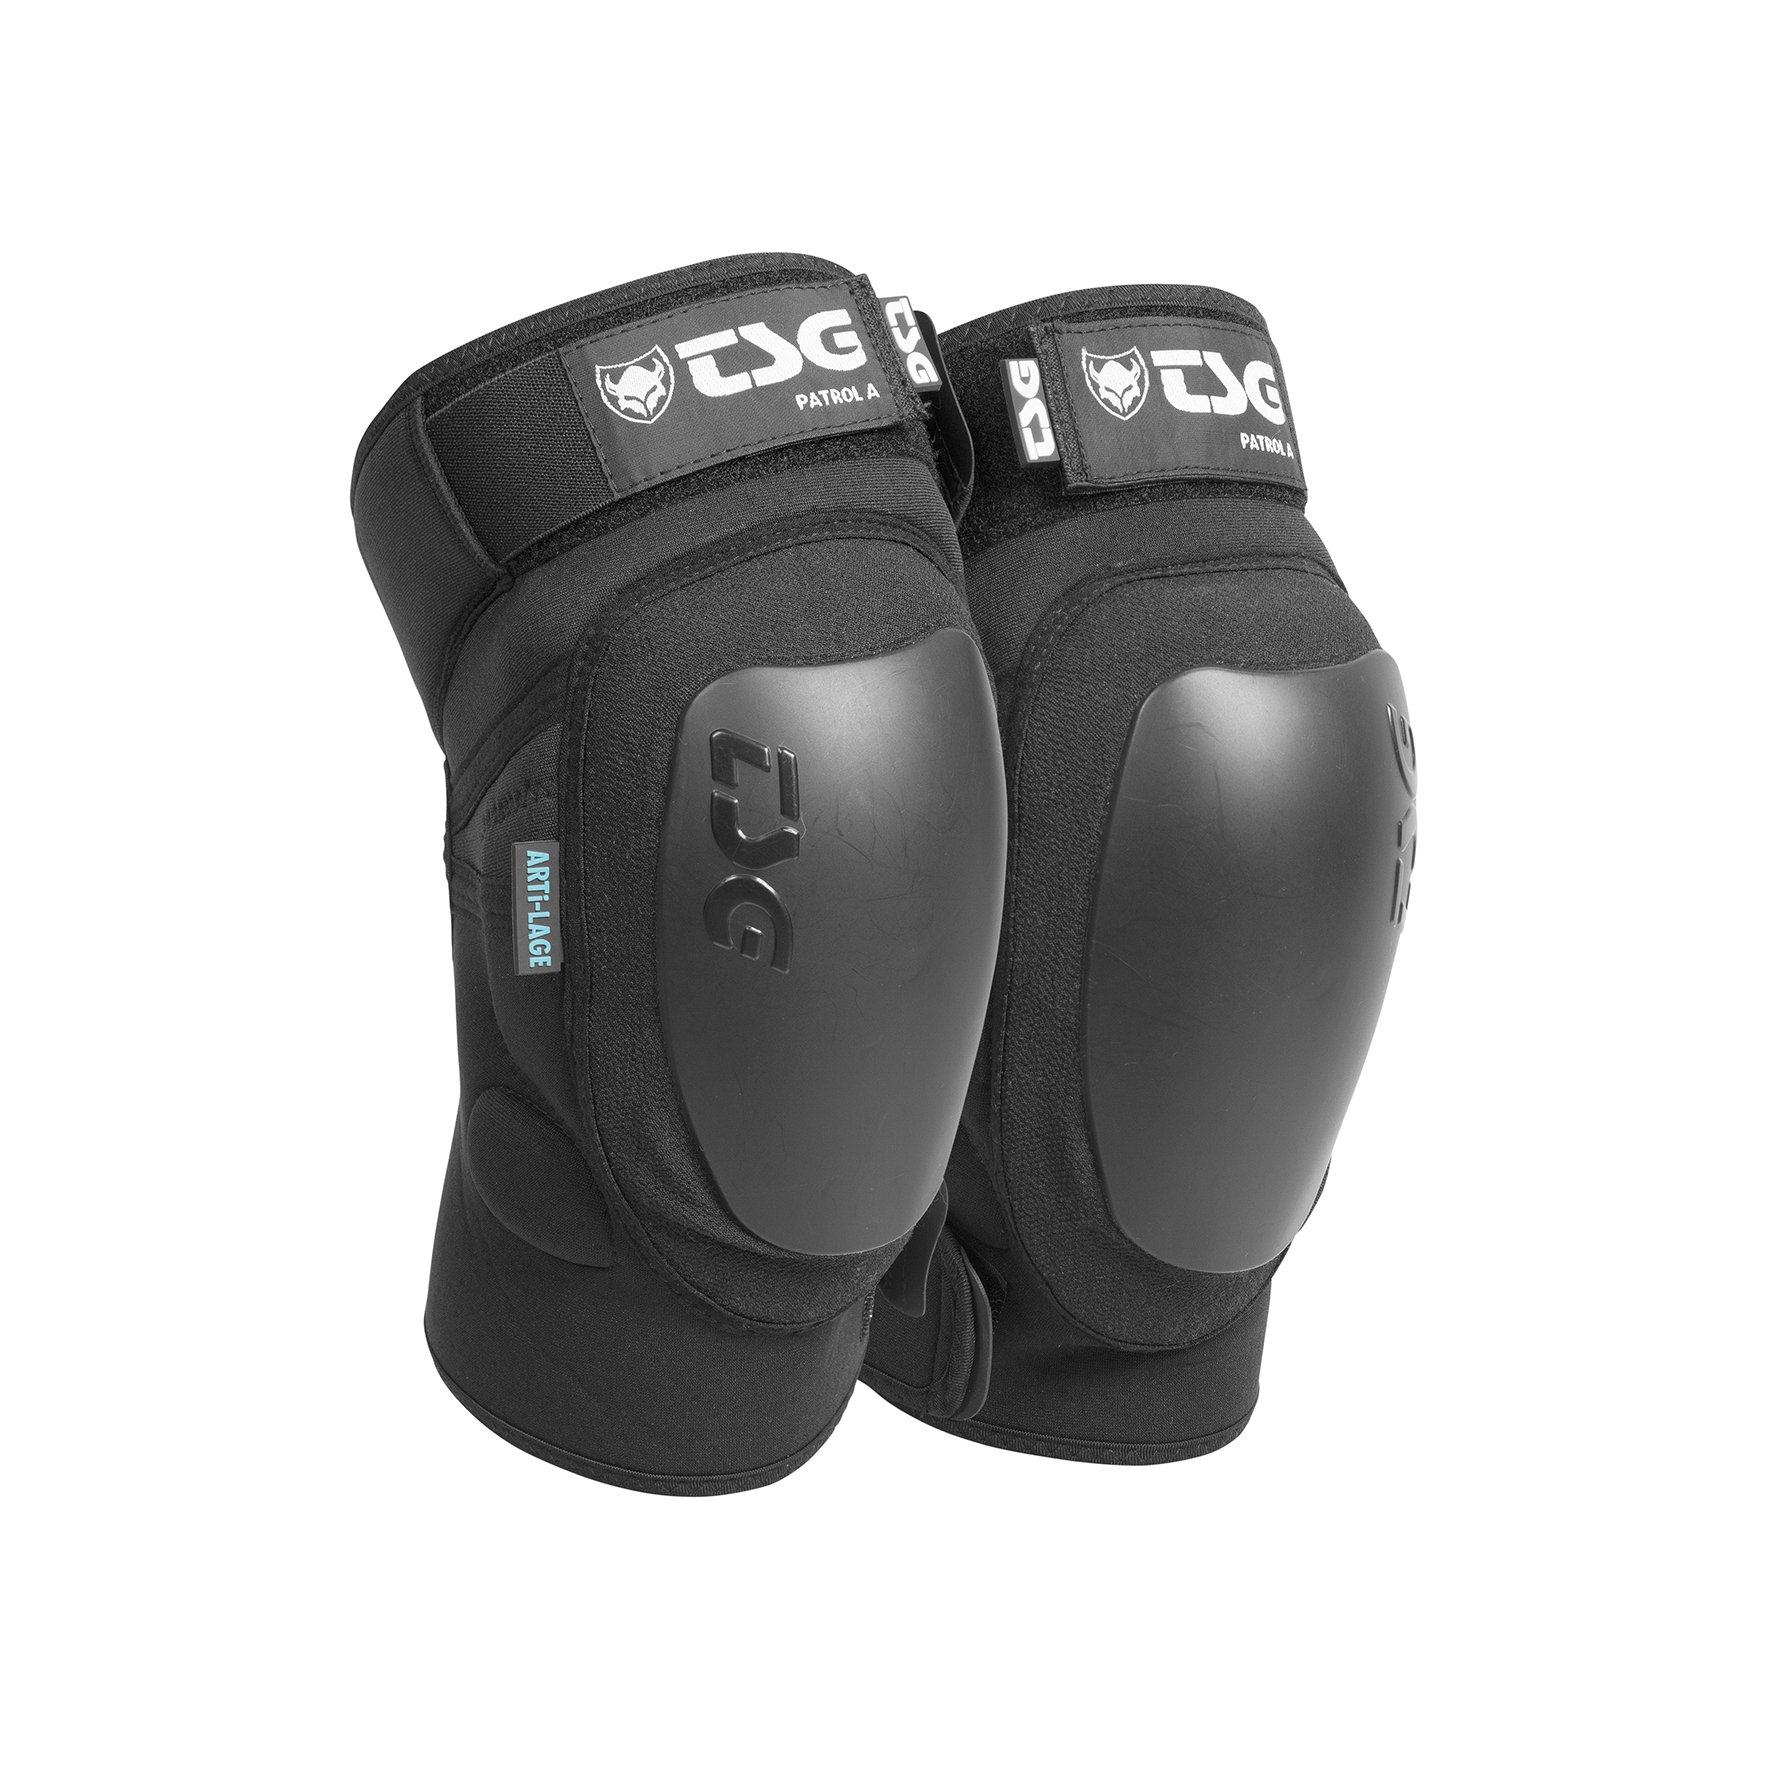 TSG - Kneeguard Patrol A Pads for Bicycle (black, S)